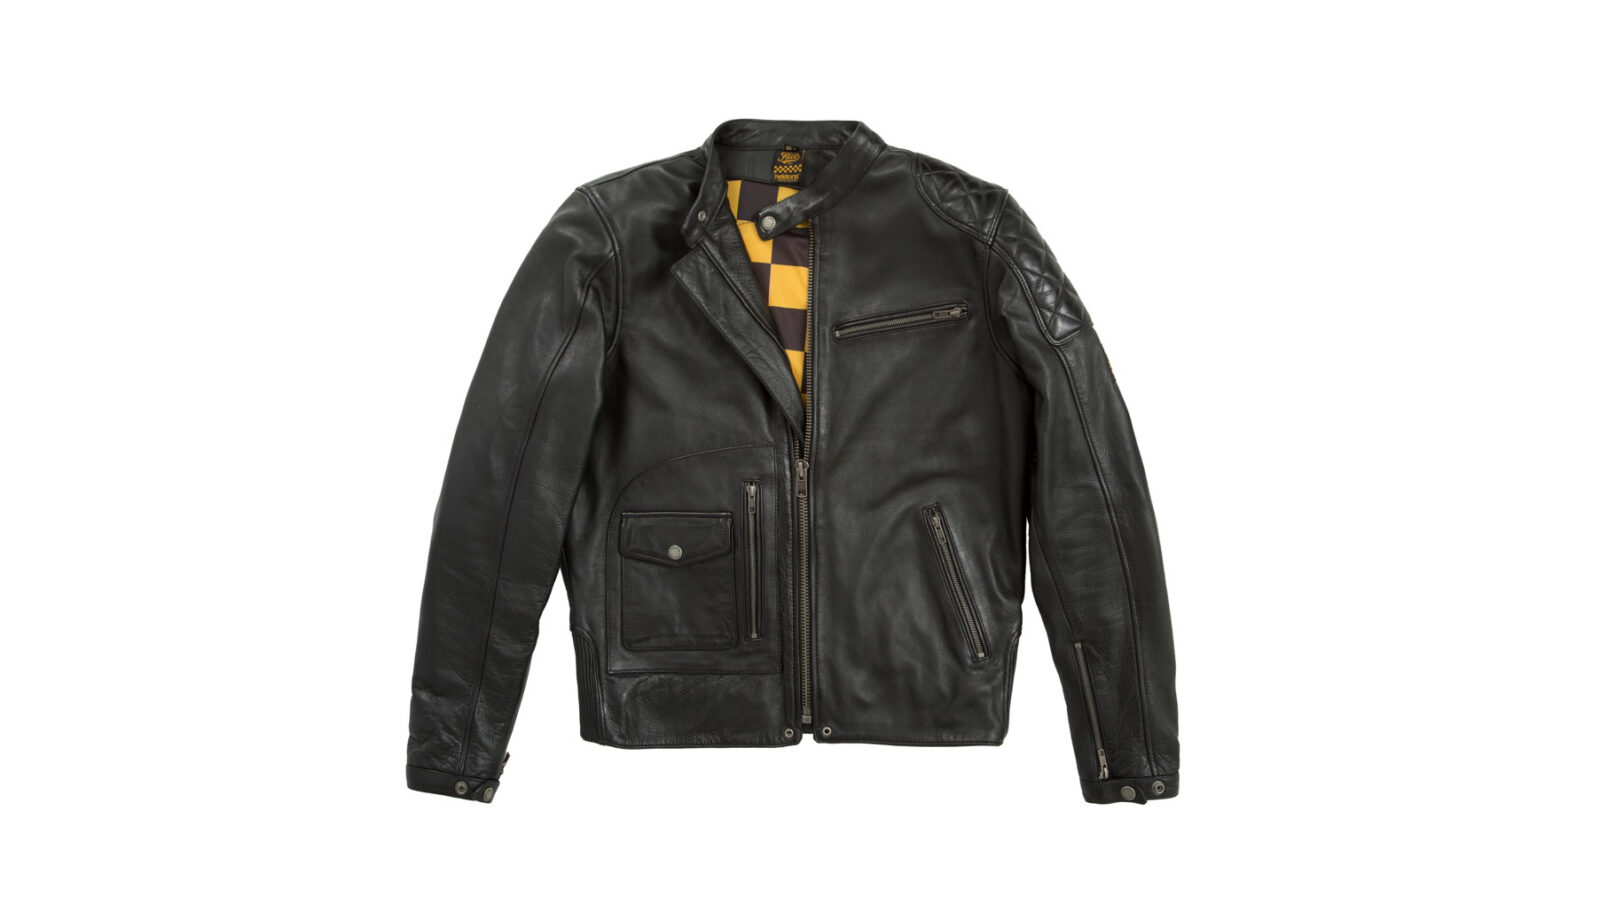 Dirt Track Motorcycle Jacket by Helstons Fuel 1600x921 - Dirt Track Motorcycle Jacket by Helstons + Fuel